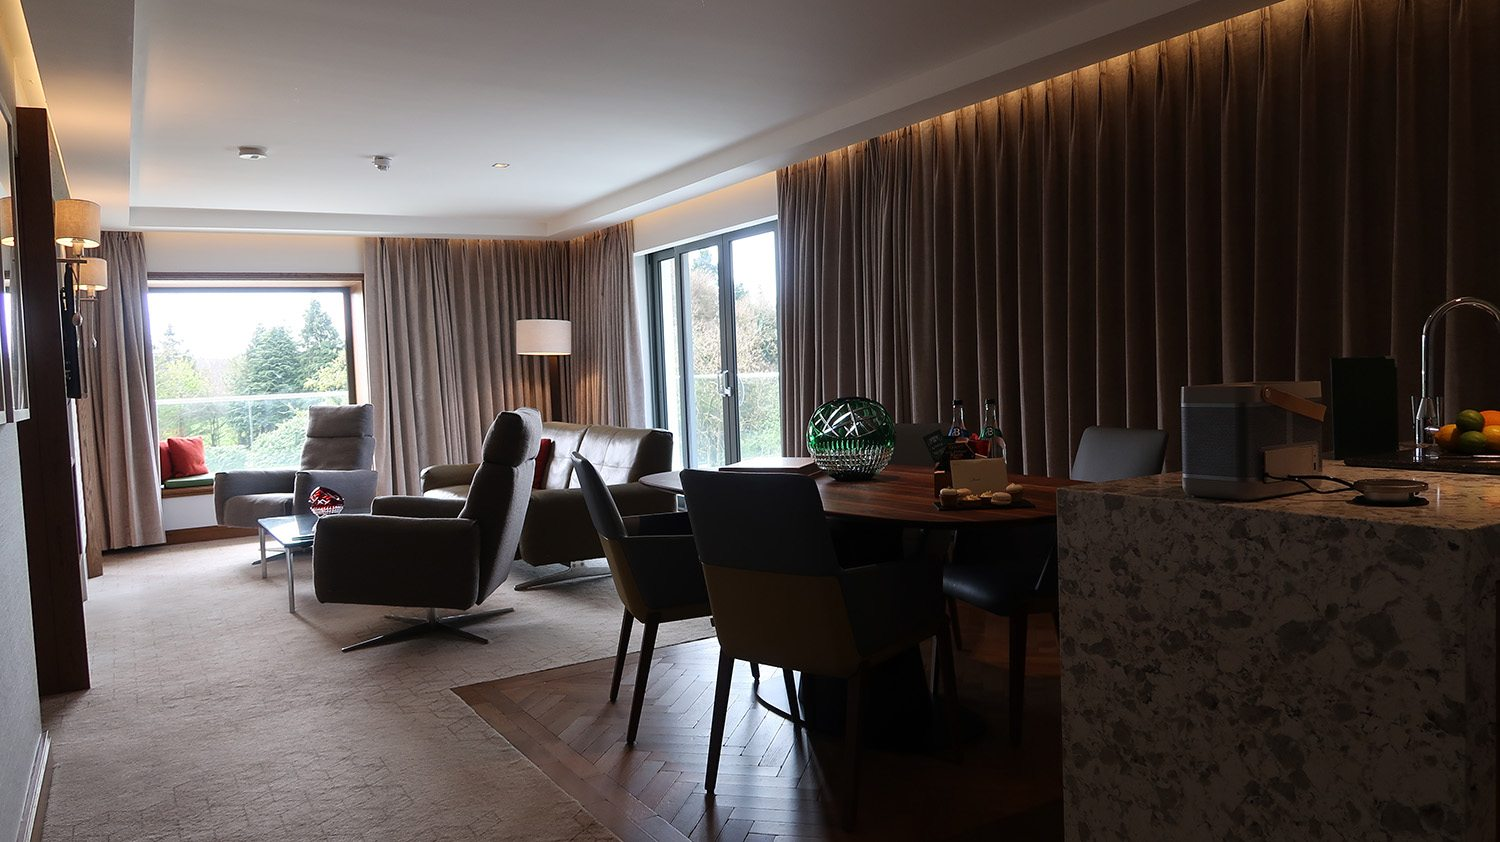 Large hotel suite with mid-century modern style furniture